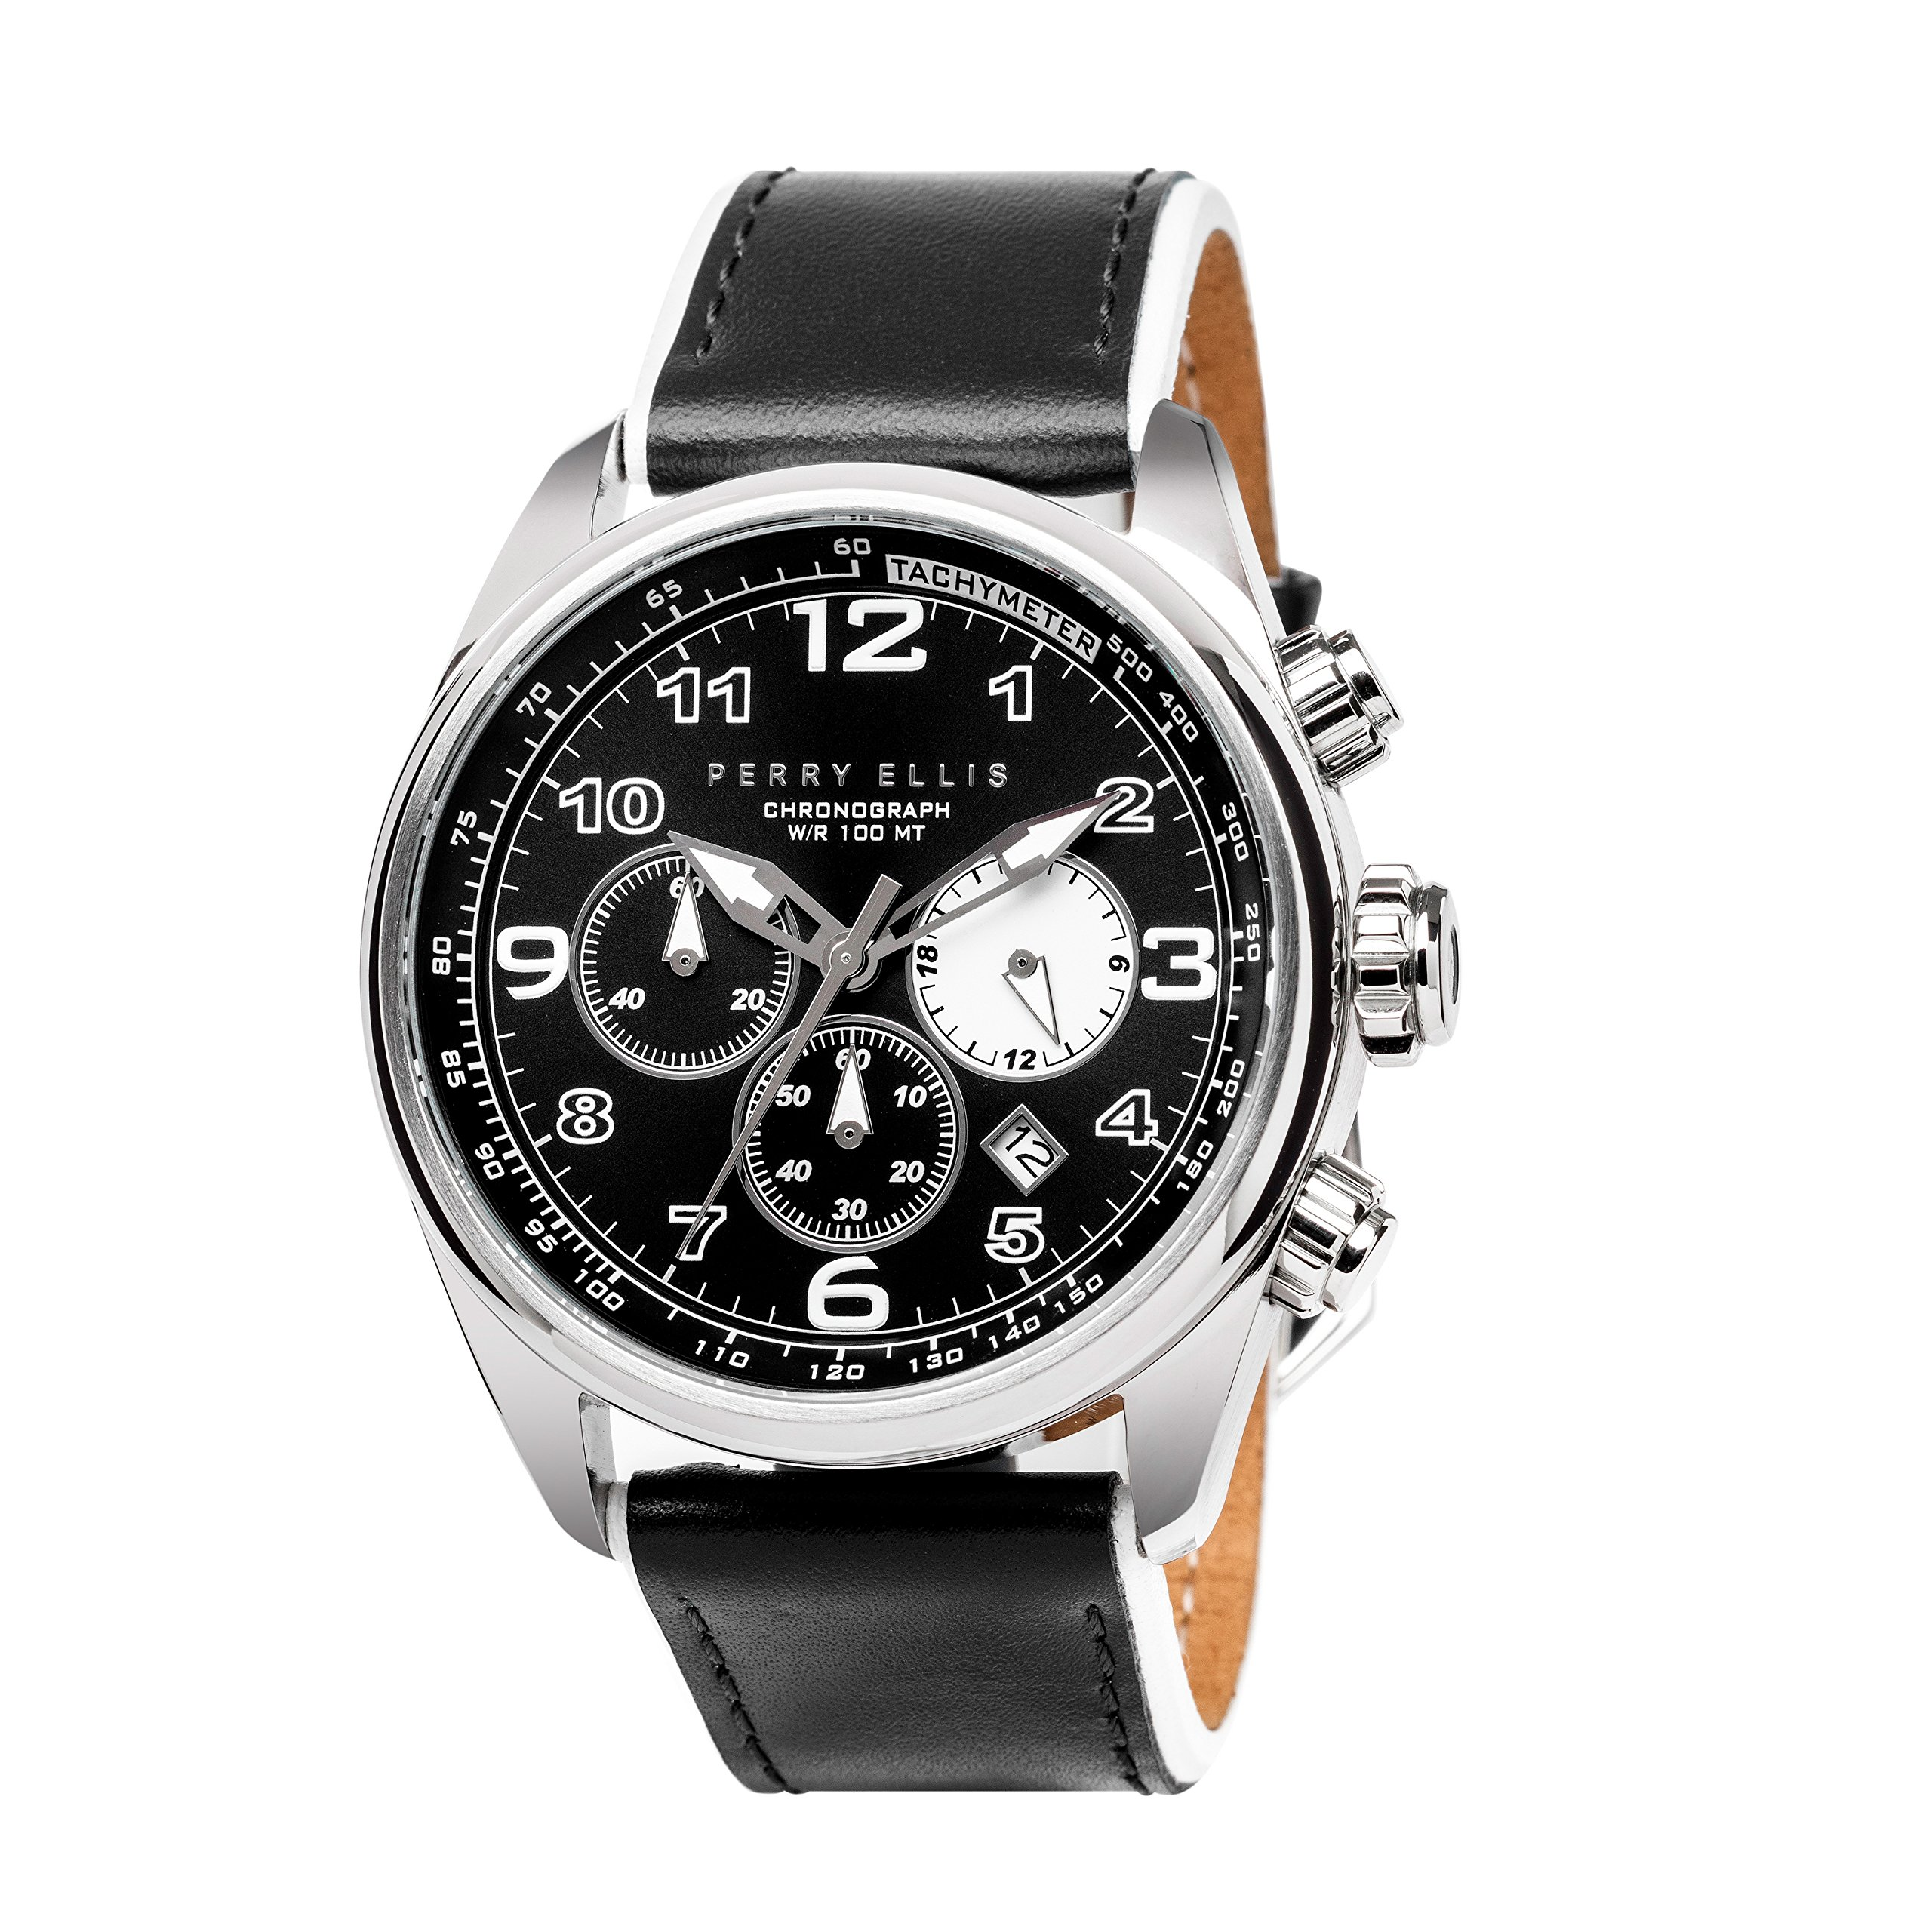 Perry Ellis GT Chronograph Quartz Luminous Watch with Date Genuine Leather Band Waterproof Black Dial Men Watch 01002-01 by Perry Ellis